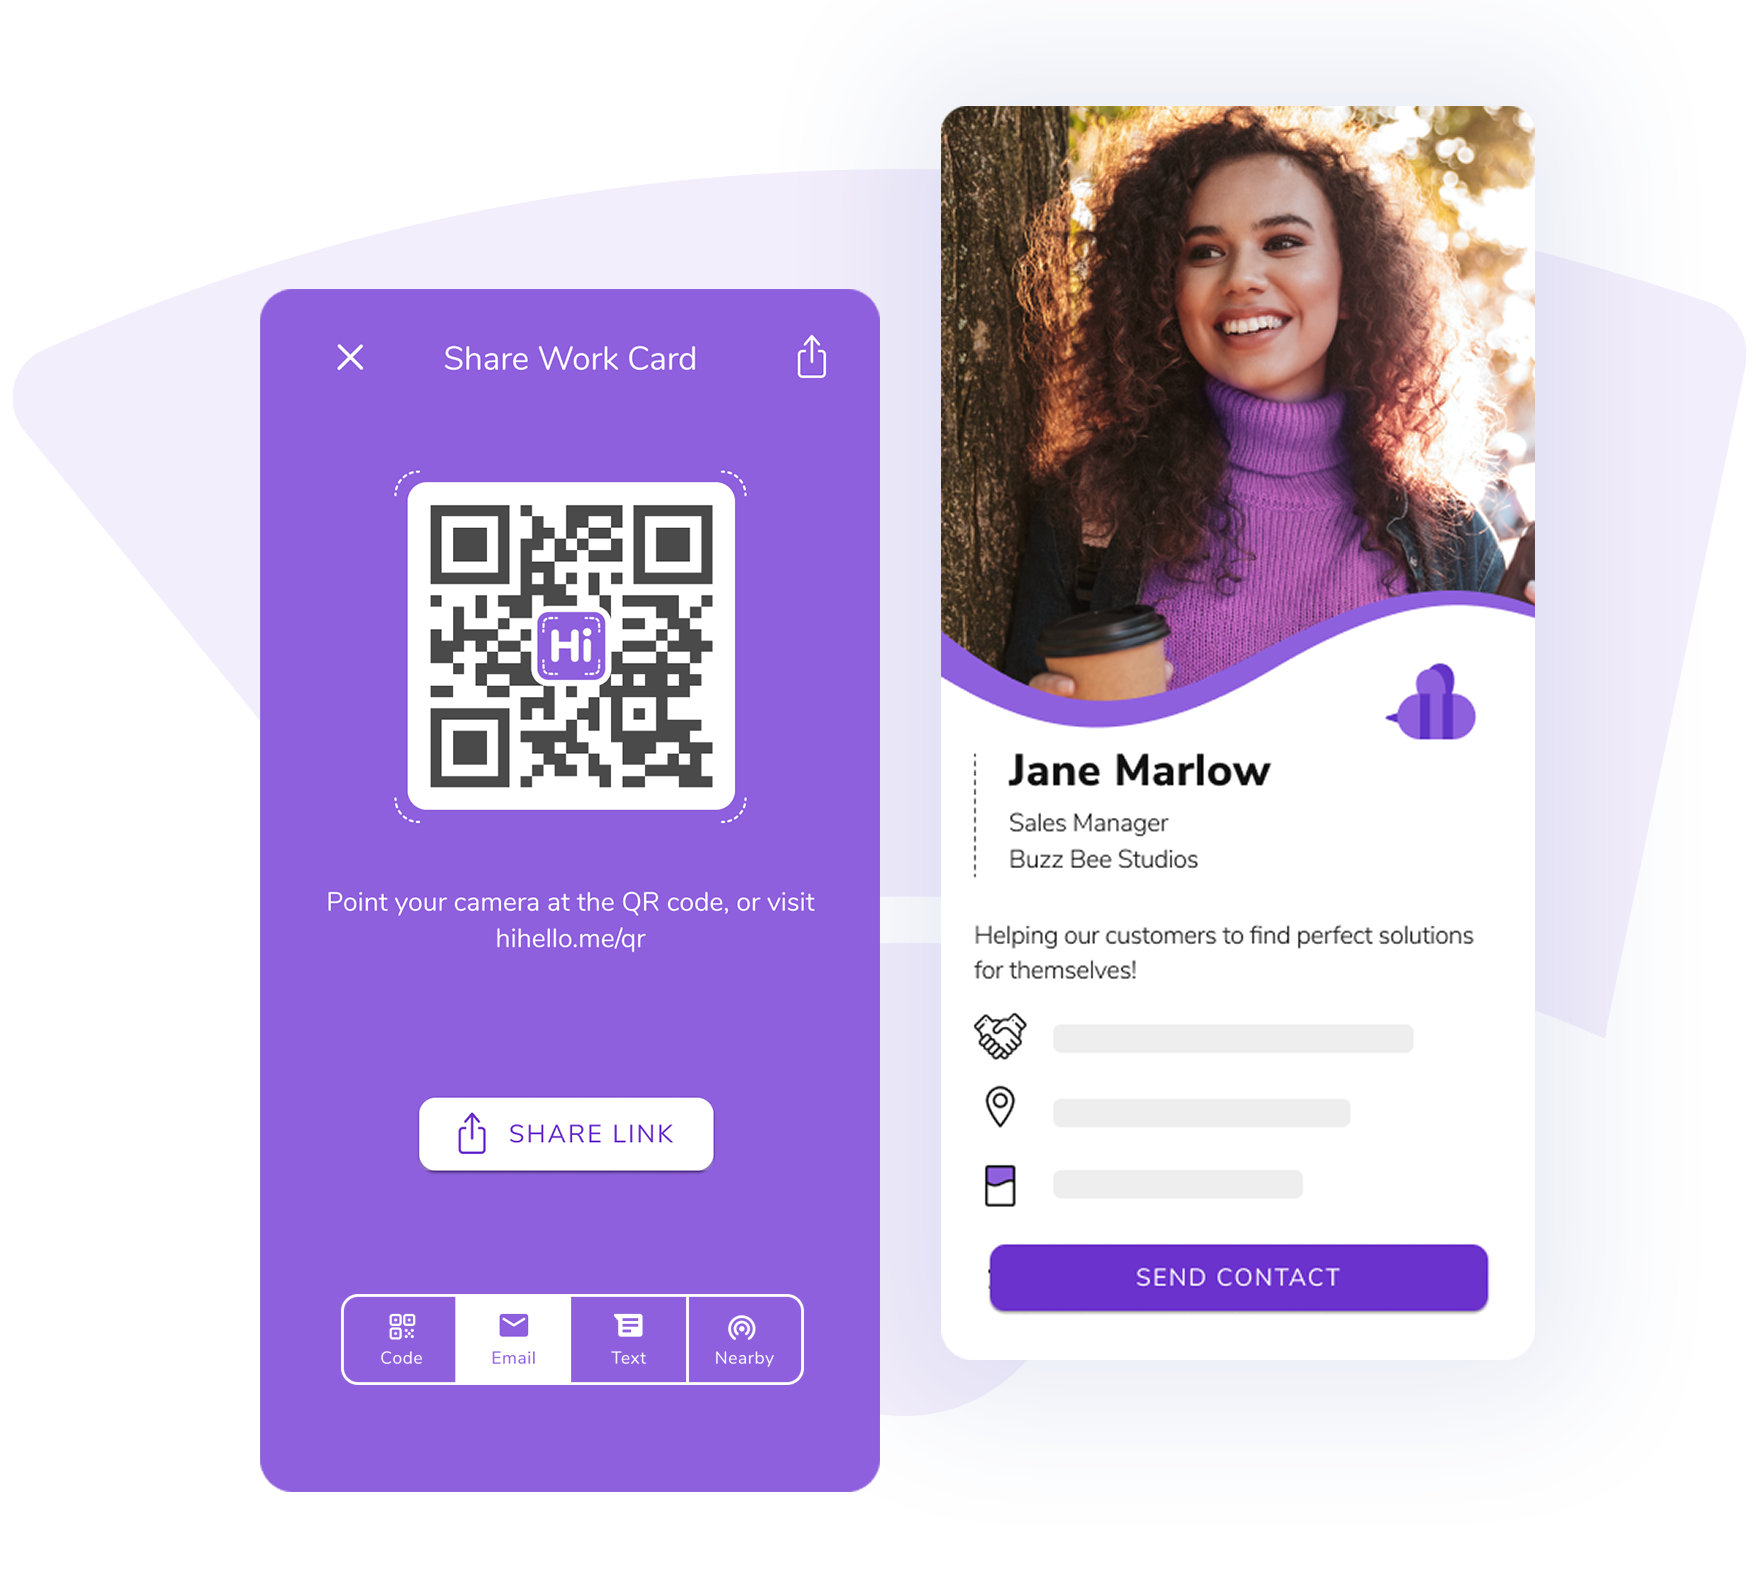 Share your HiHello digital business card via QR code, text, or email.